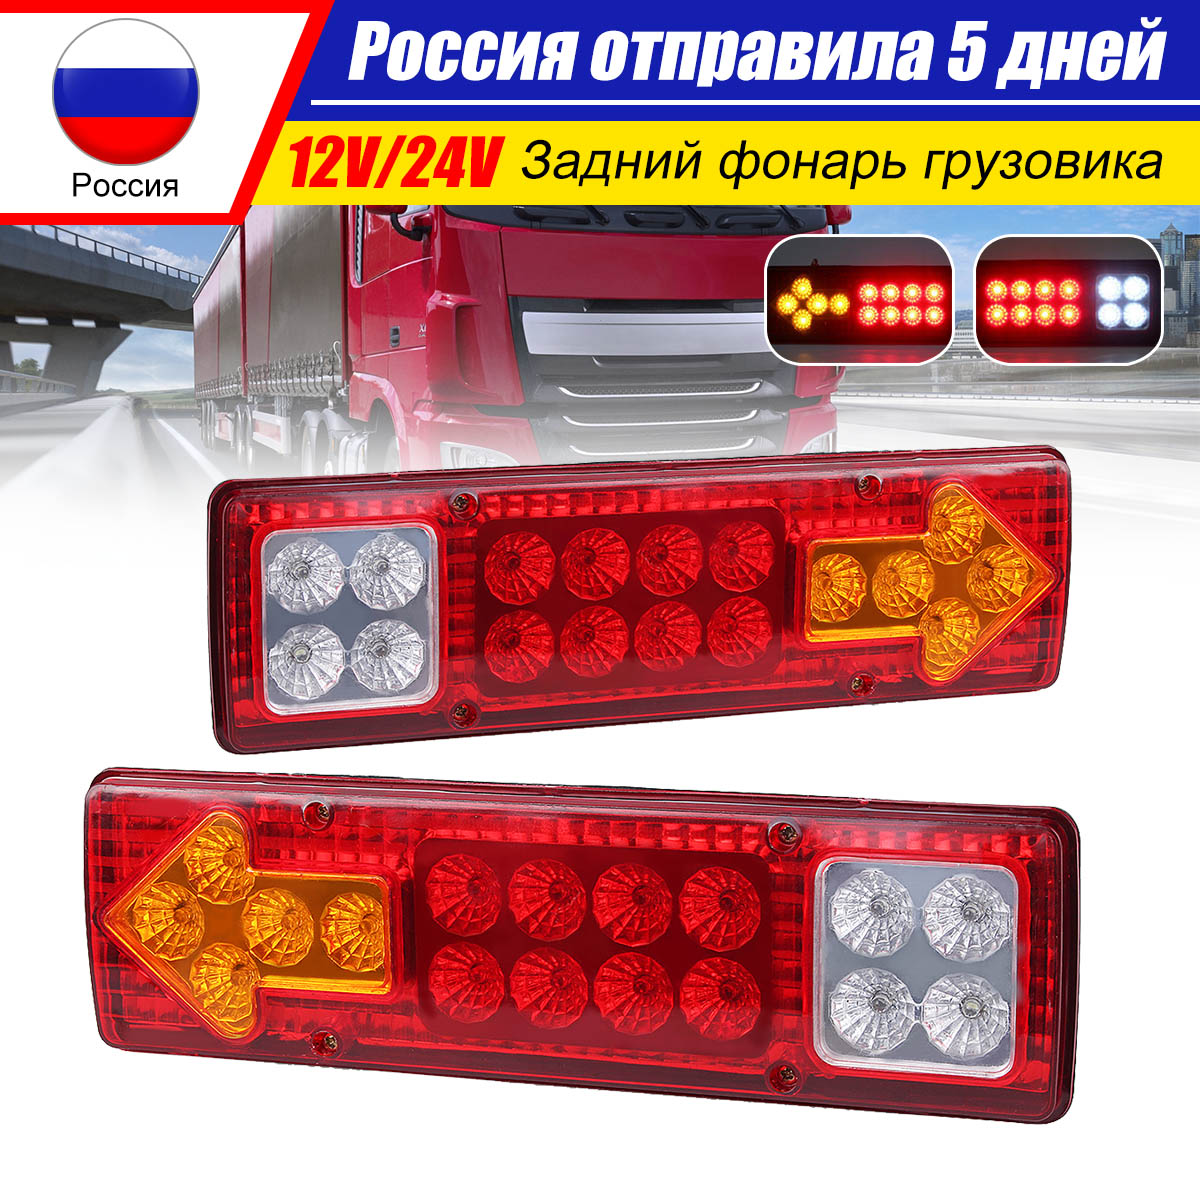 12V/24V 17 LED Rear Trailer Truck Light Caravan Truck Tail Light Turn Signal Reverse Brake Rear Lamp Indicator Reverse Lamp